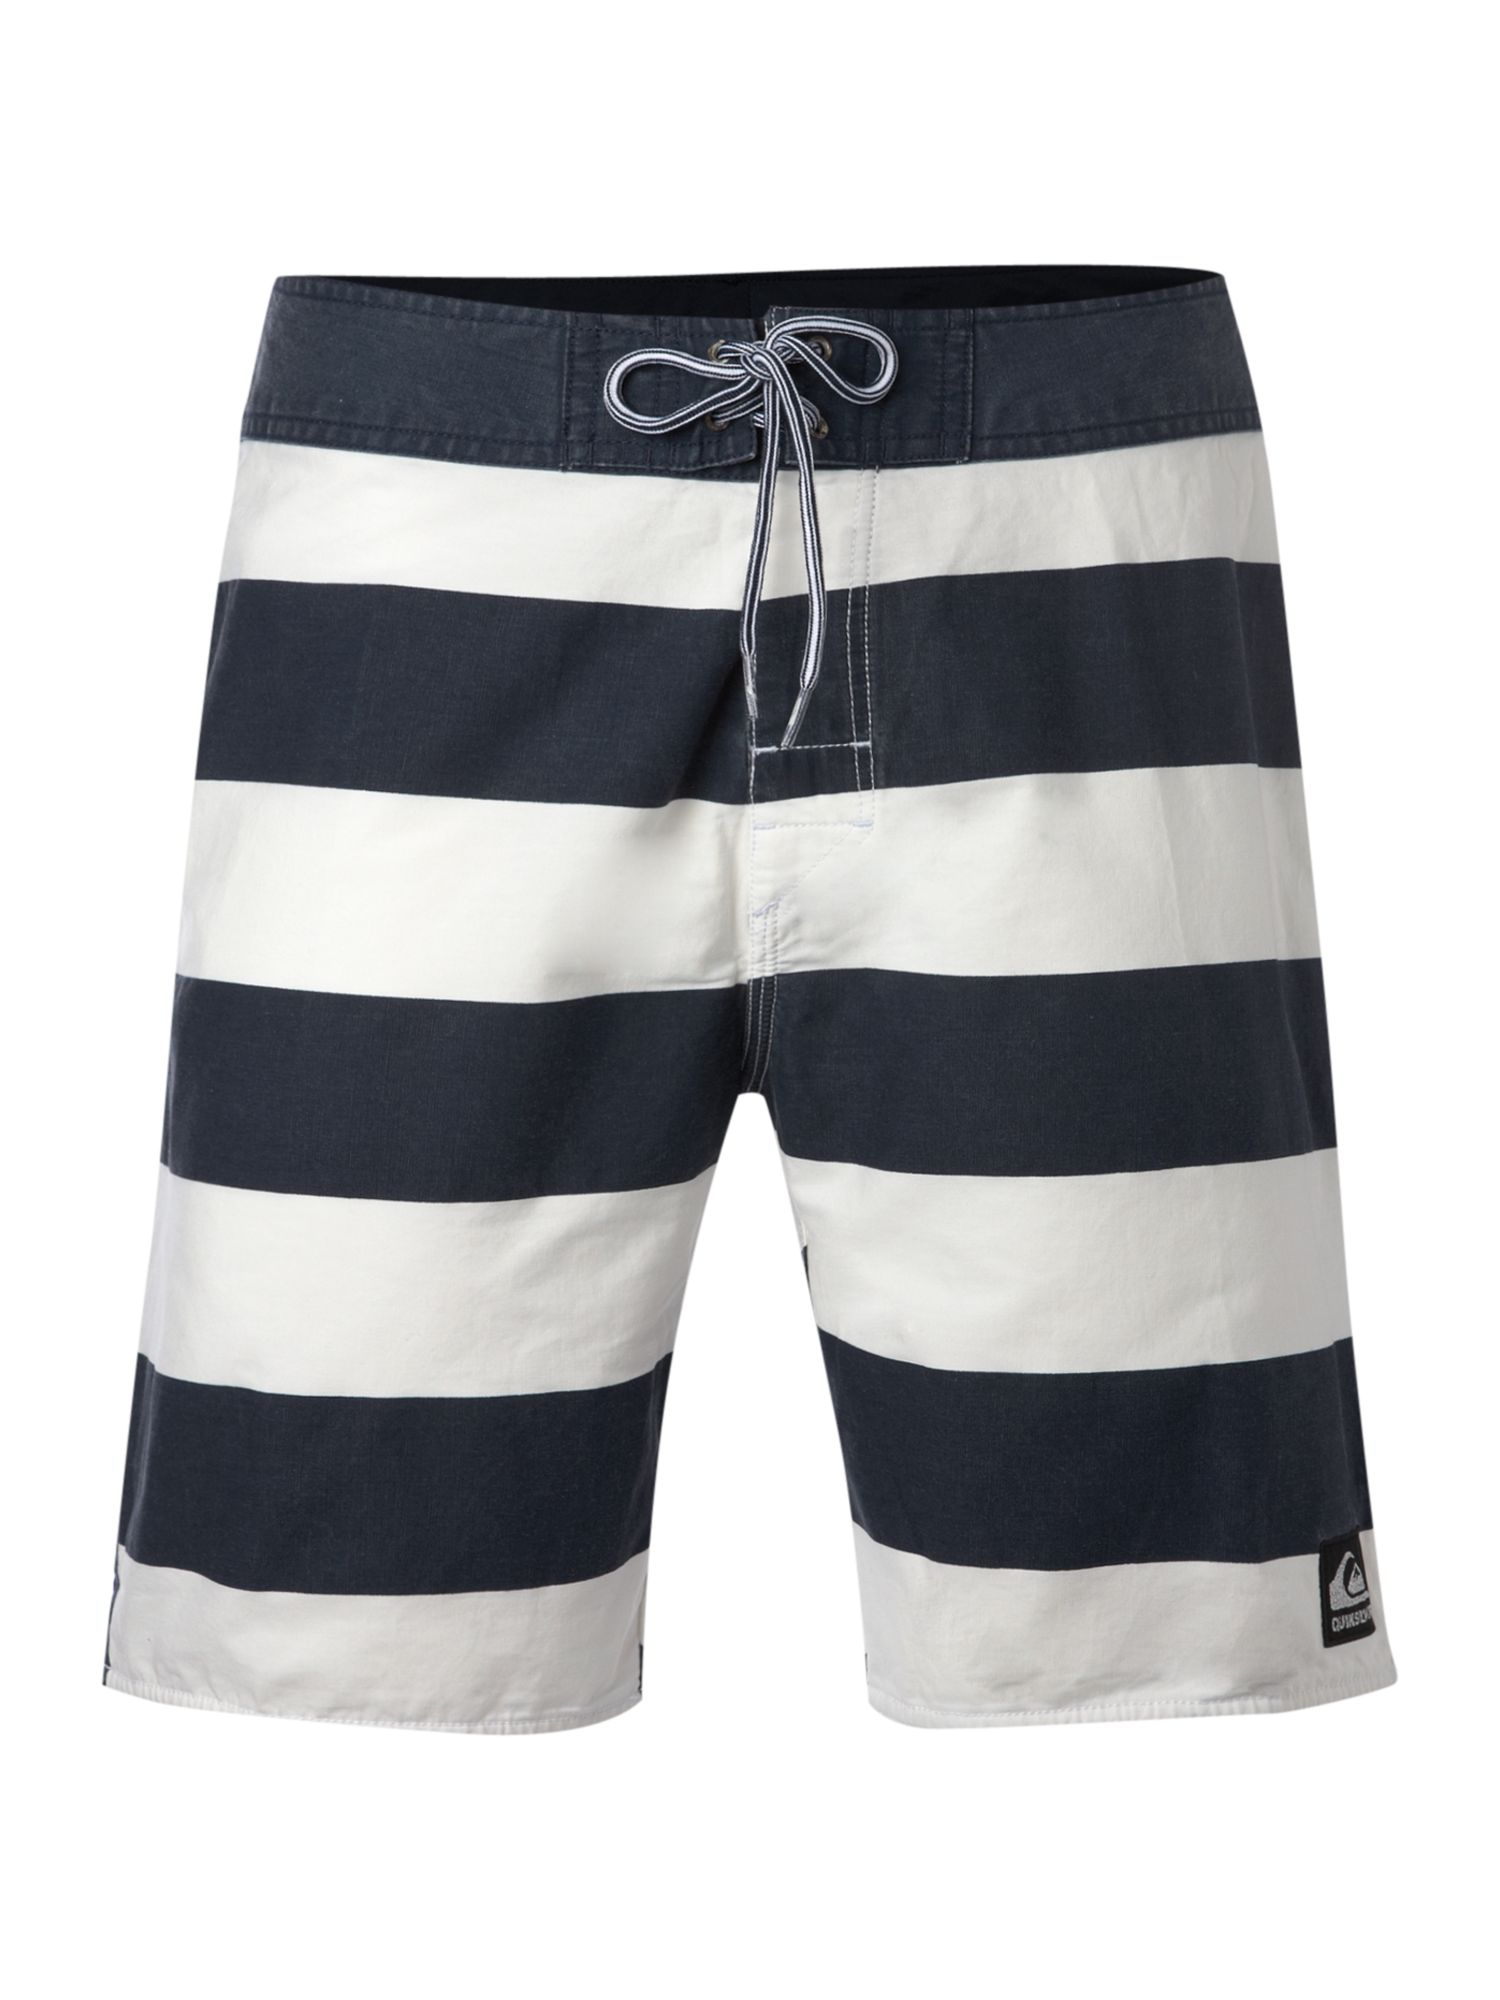 Buy Nonwe Men's Swimwear Quick Dry Striped Board Shorts and other Board Shorts at shopnow-vjpmehag.cf Our wide selection is elegible for free shipping and free returns/5(41).